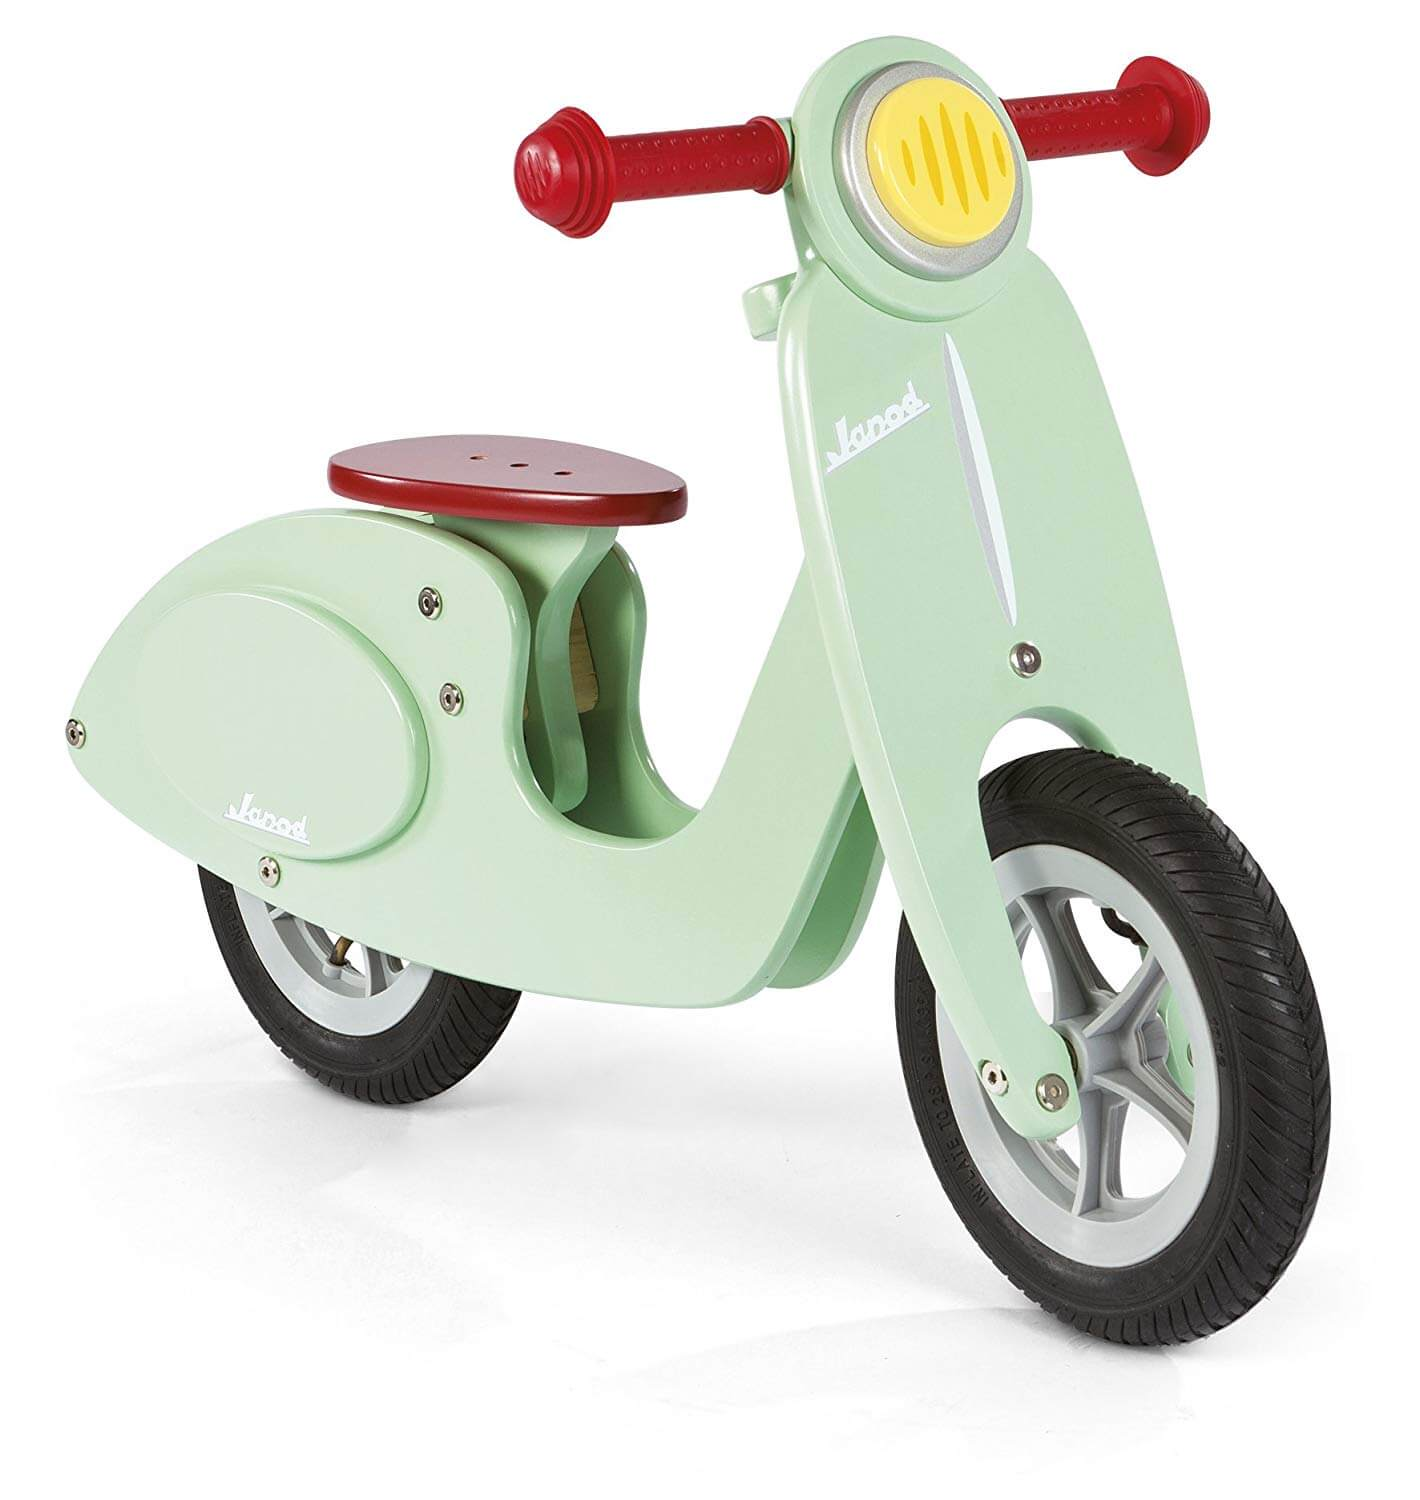 34 Holiday GiftIdeas for Babies and Toddlers www.sarahkayhoffman.com #holidaygift #toddler #gifts #holiday Janod Scooter Mint Balance Bike